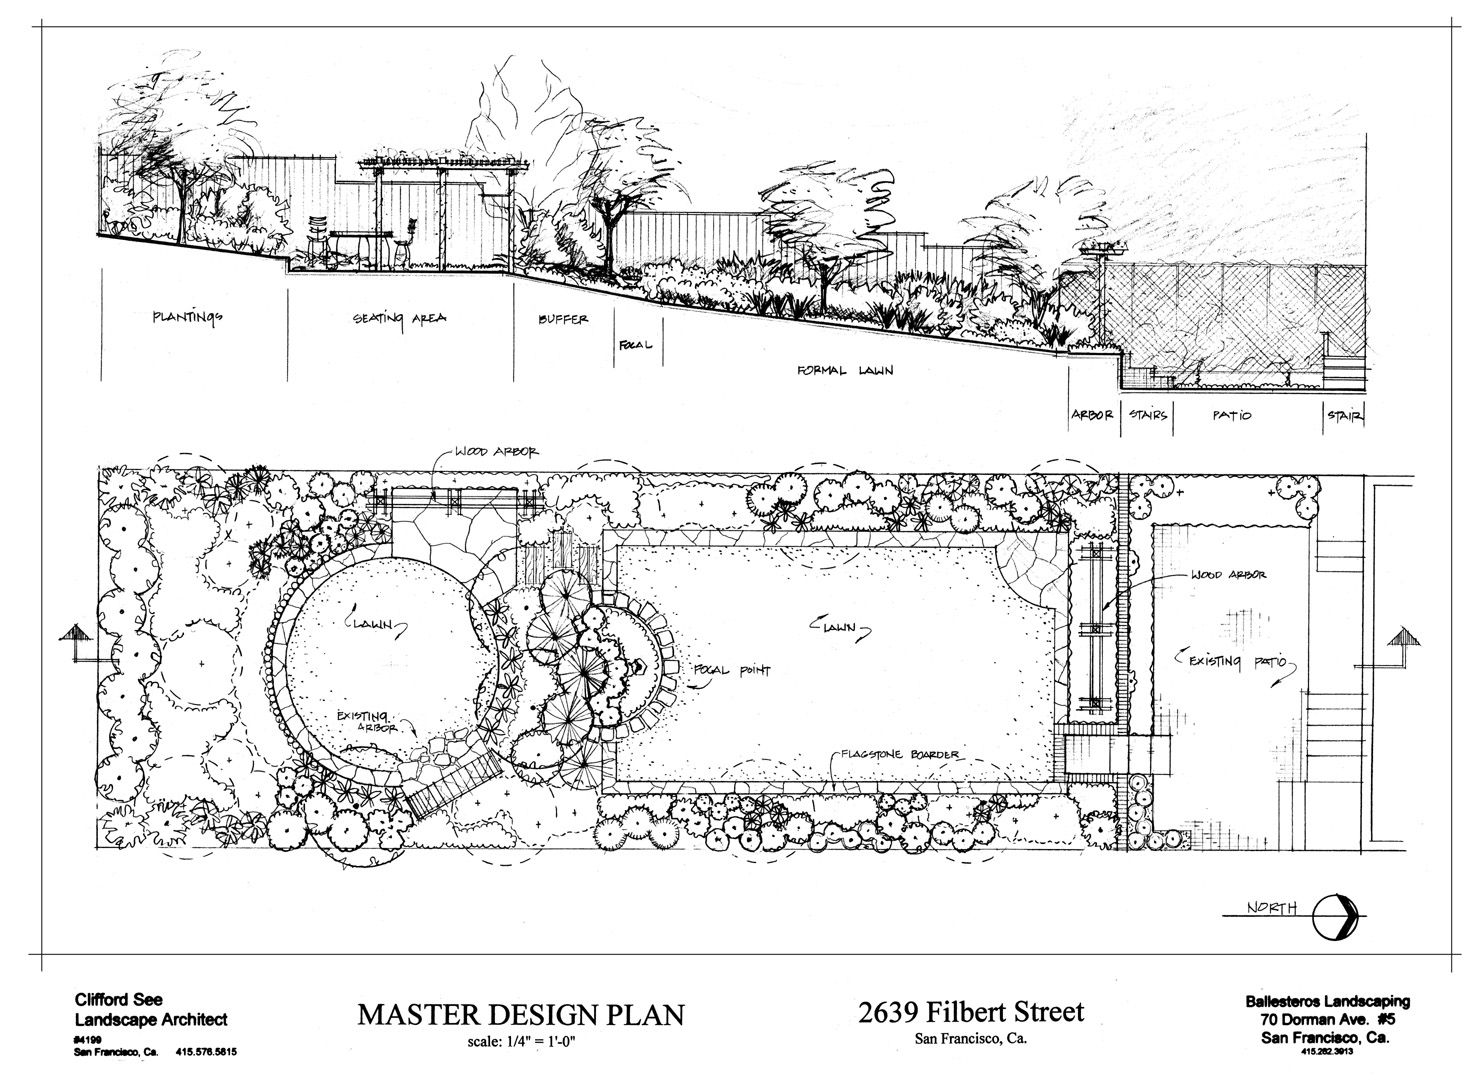 Landscape Architecture Section Drawings formal, terrraced garden design with a rectangular and a circular